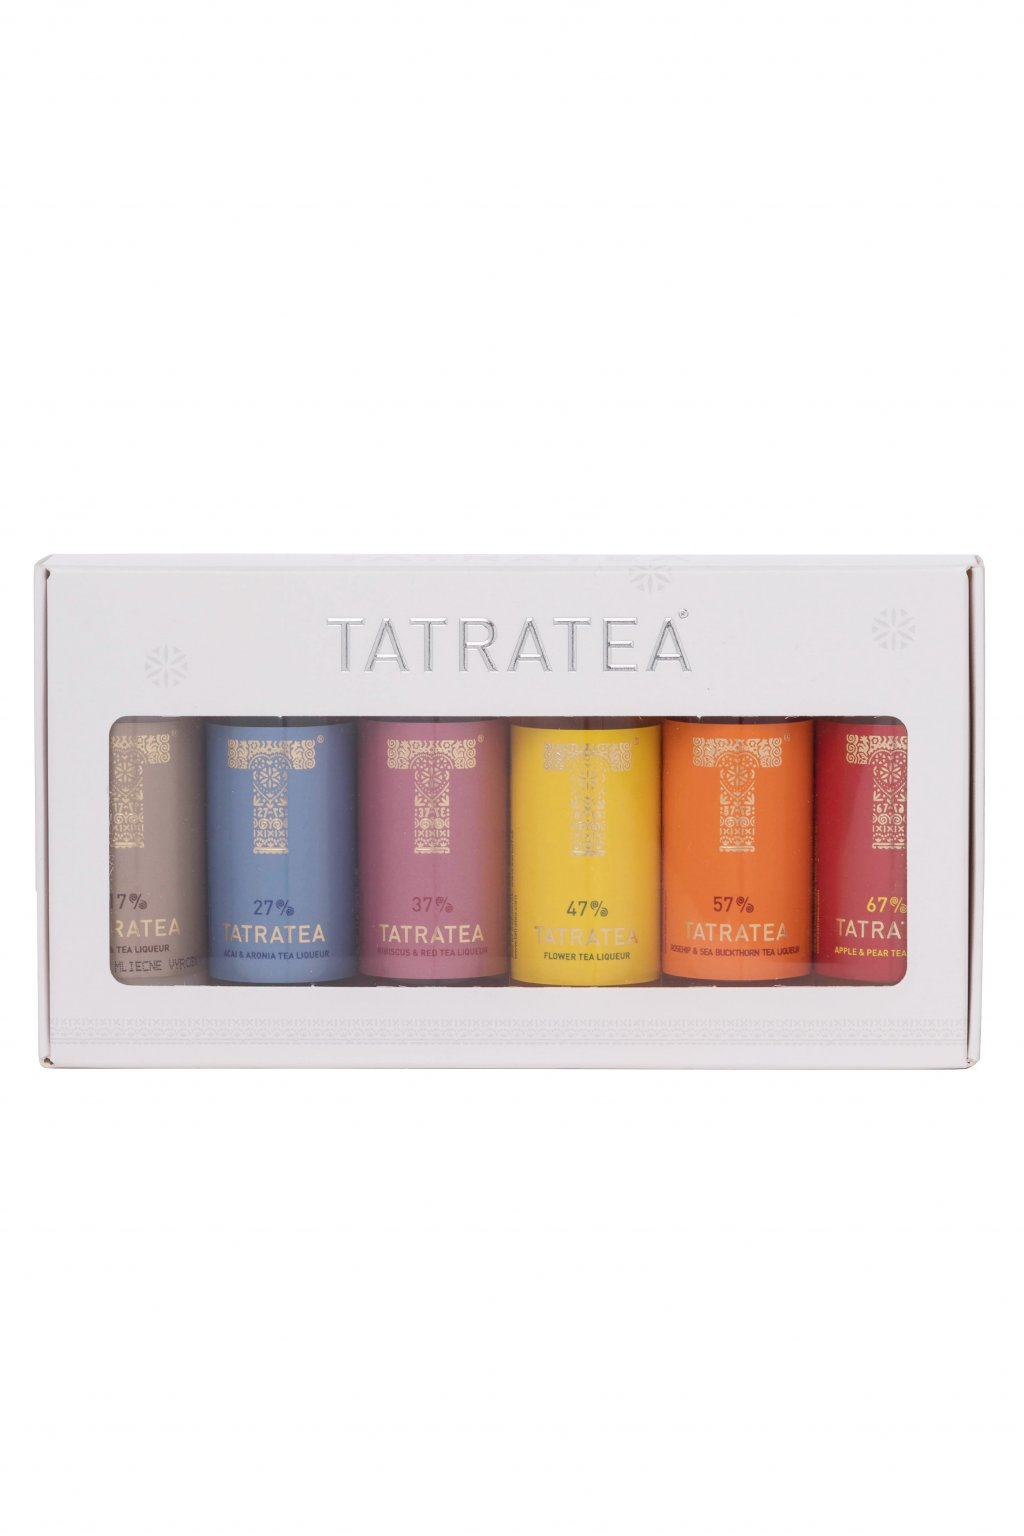 Tatratea mini set 17 67%